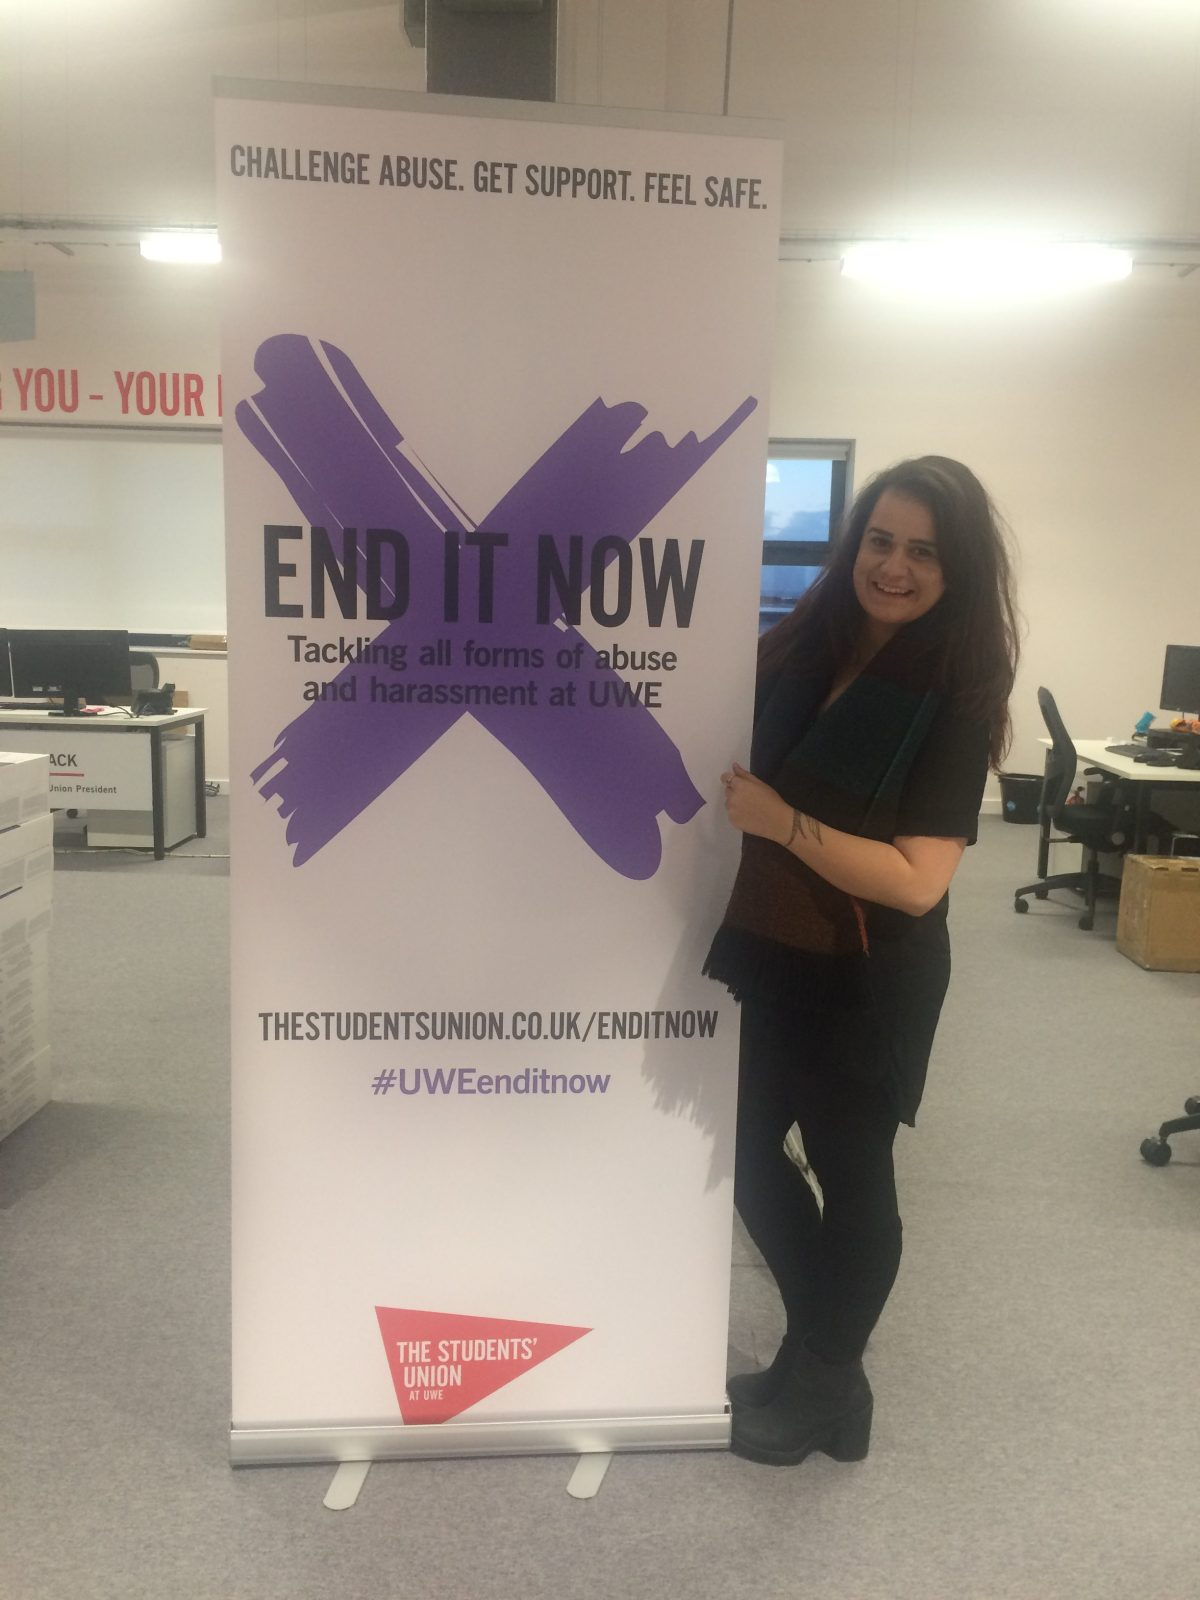 Ruth at End It Now event, A global campaign to raise awareness and advocate for the end of violence against women and children [Image credit: Ruth O'Leary]